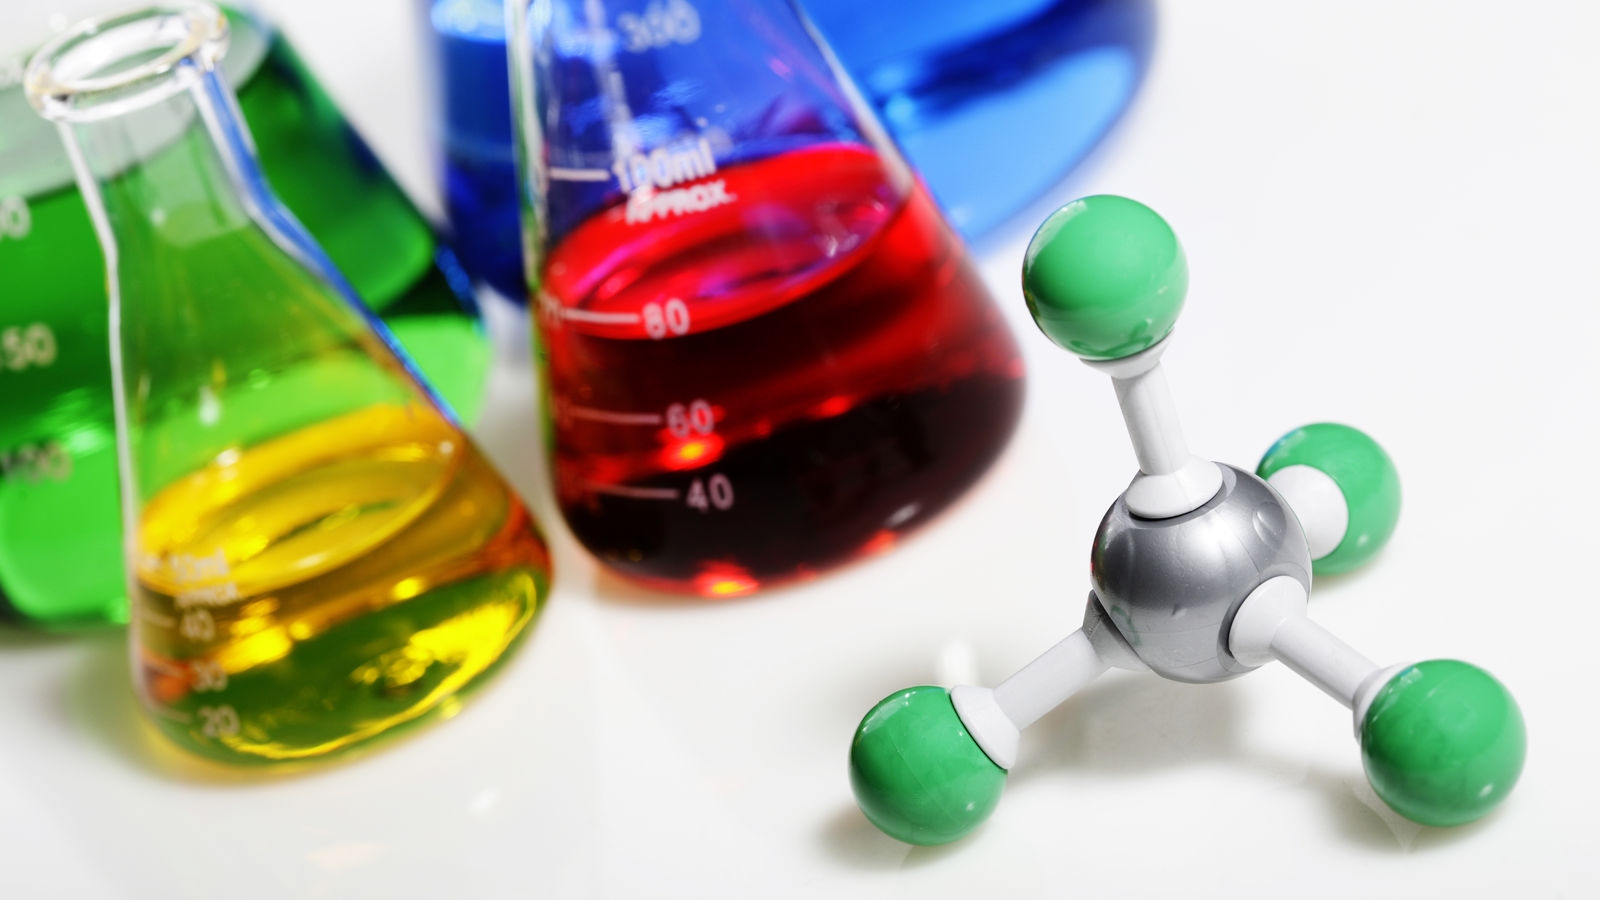 Beakers filled with chemicals on white surface